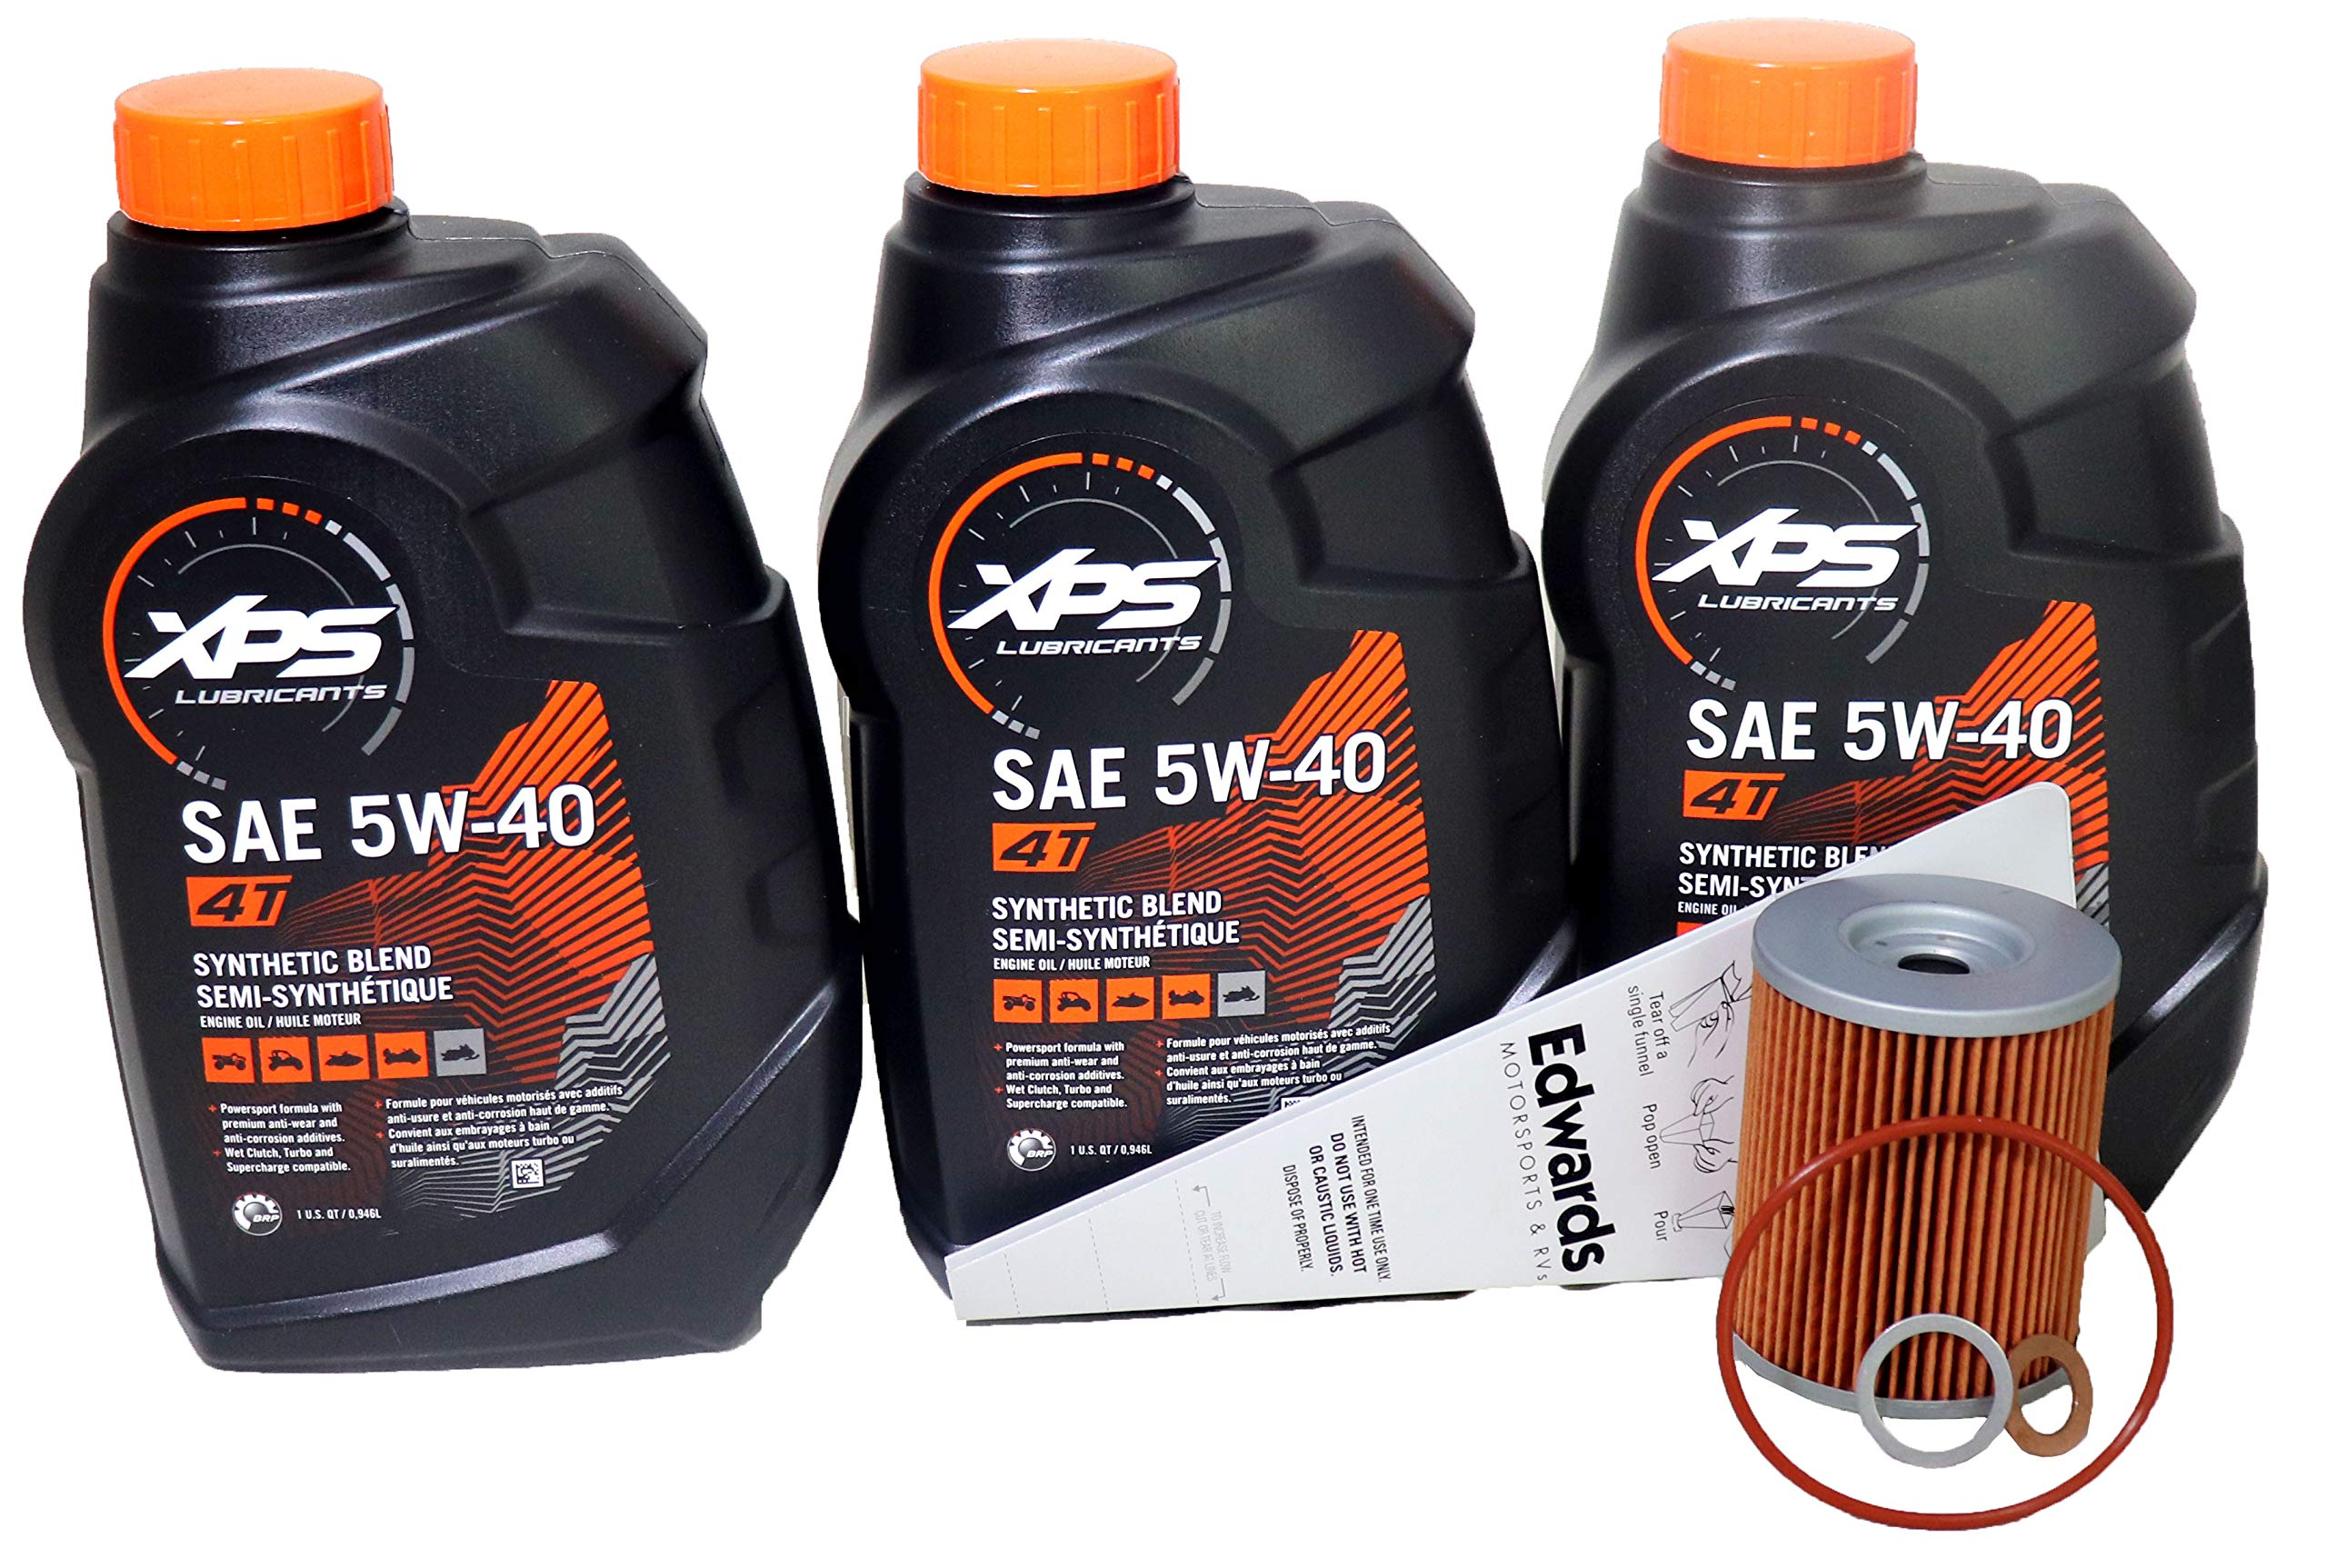 Can-Am XPS 4-Stroke Semi Synthetic Oil Change Kit for Can-Am Maverick 1000R 2013-2019